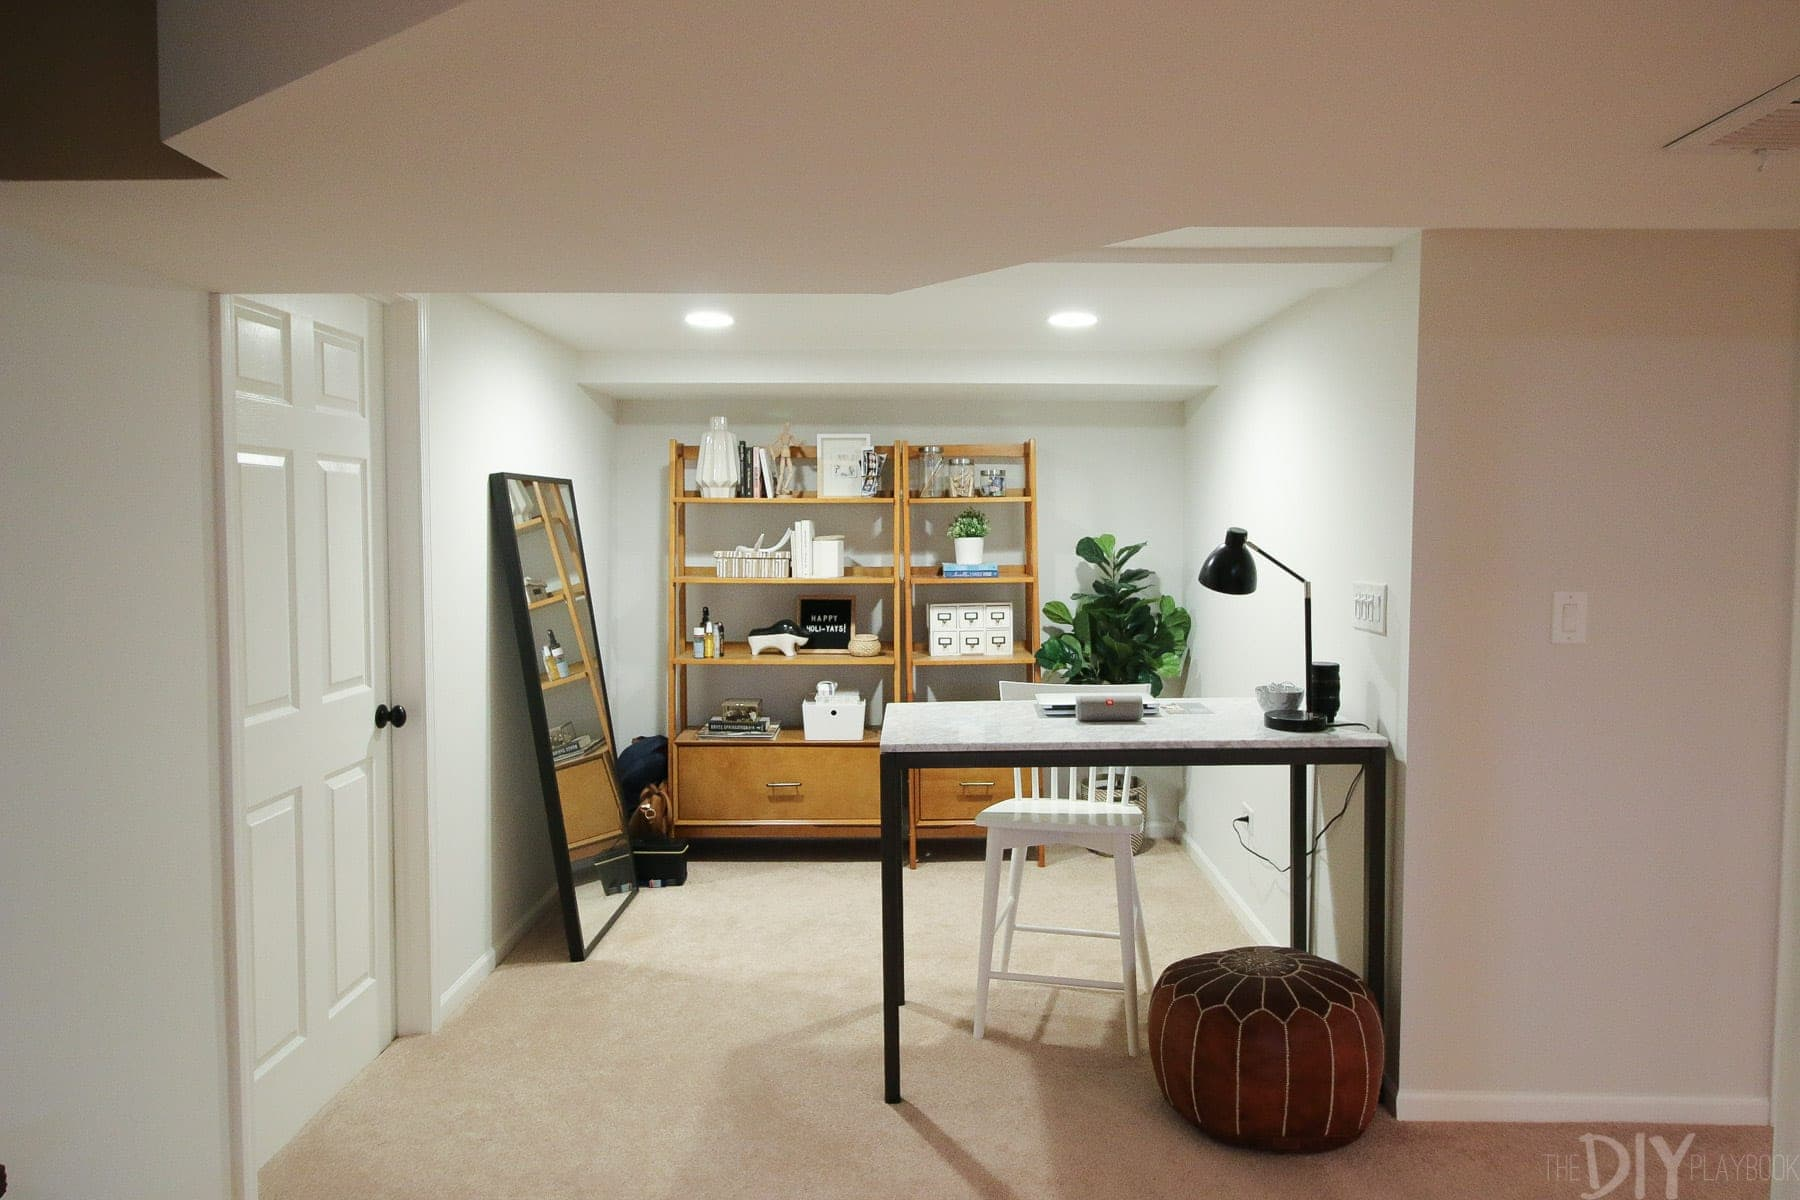 Living in the Basement | DIY Playbook